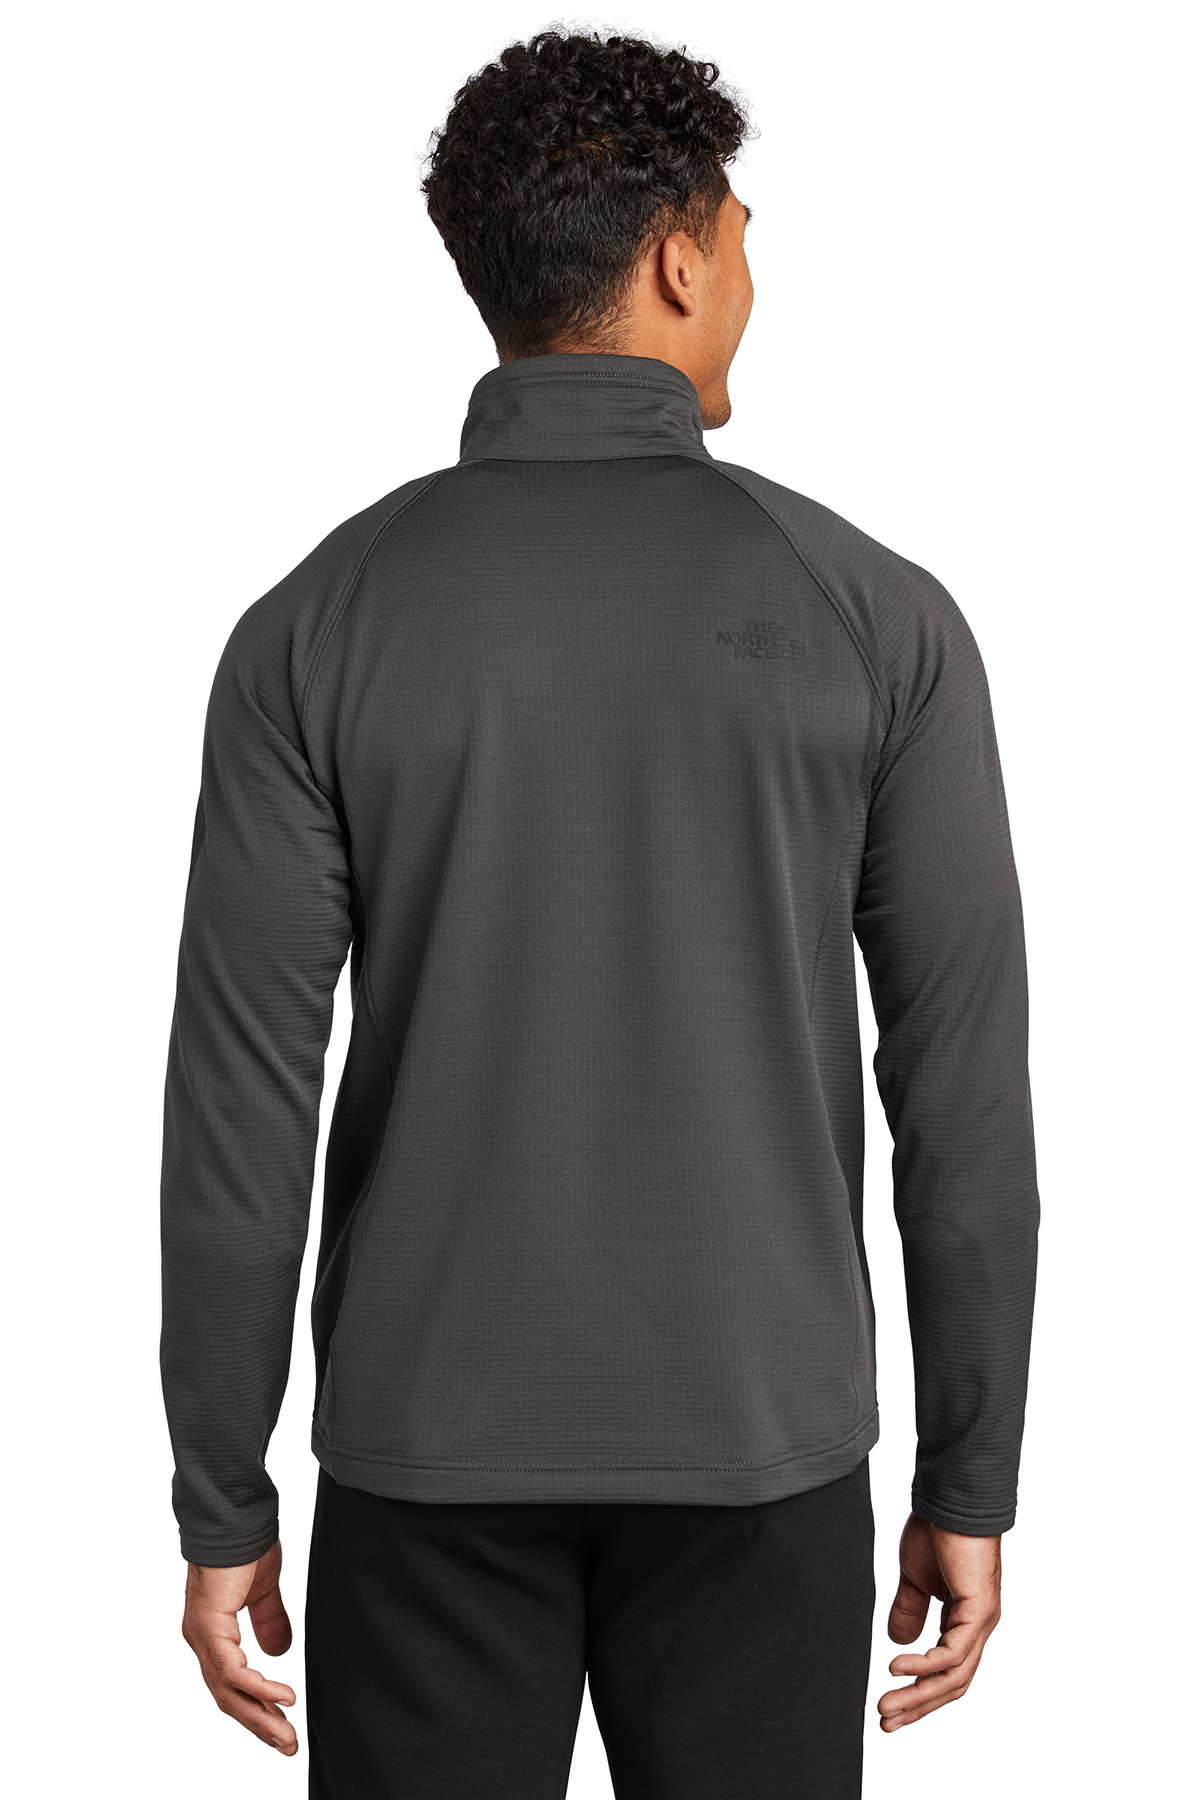 9924016fc The North Face ® Mountain Peaks Full-Zip Fleece Jacket | Full Zip ...